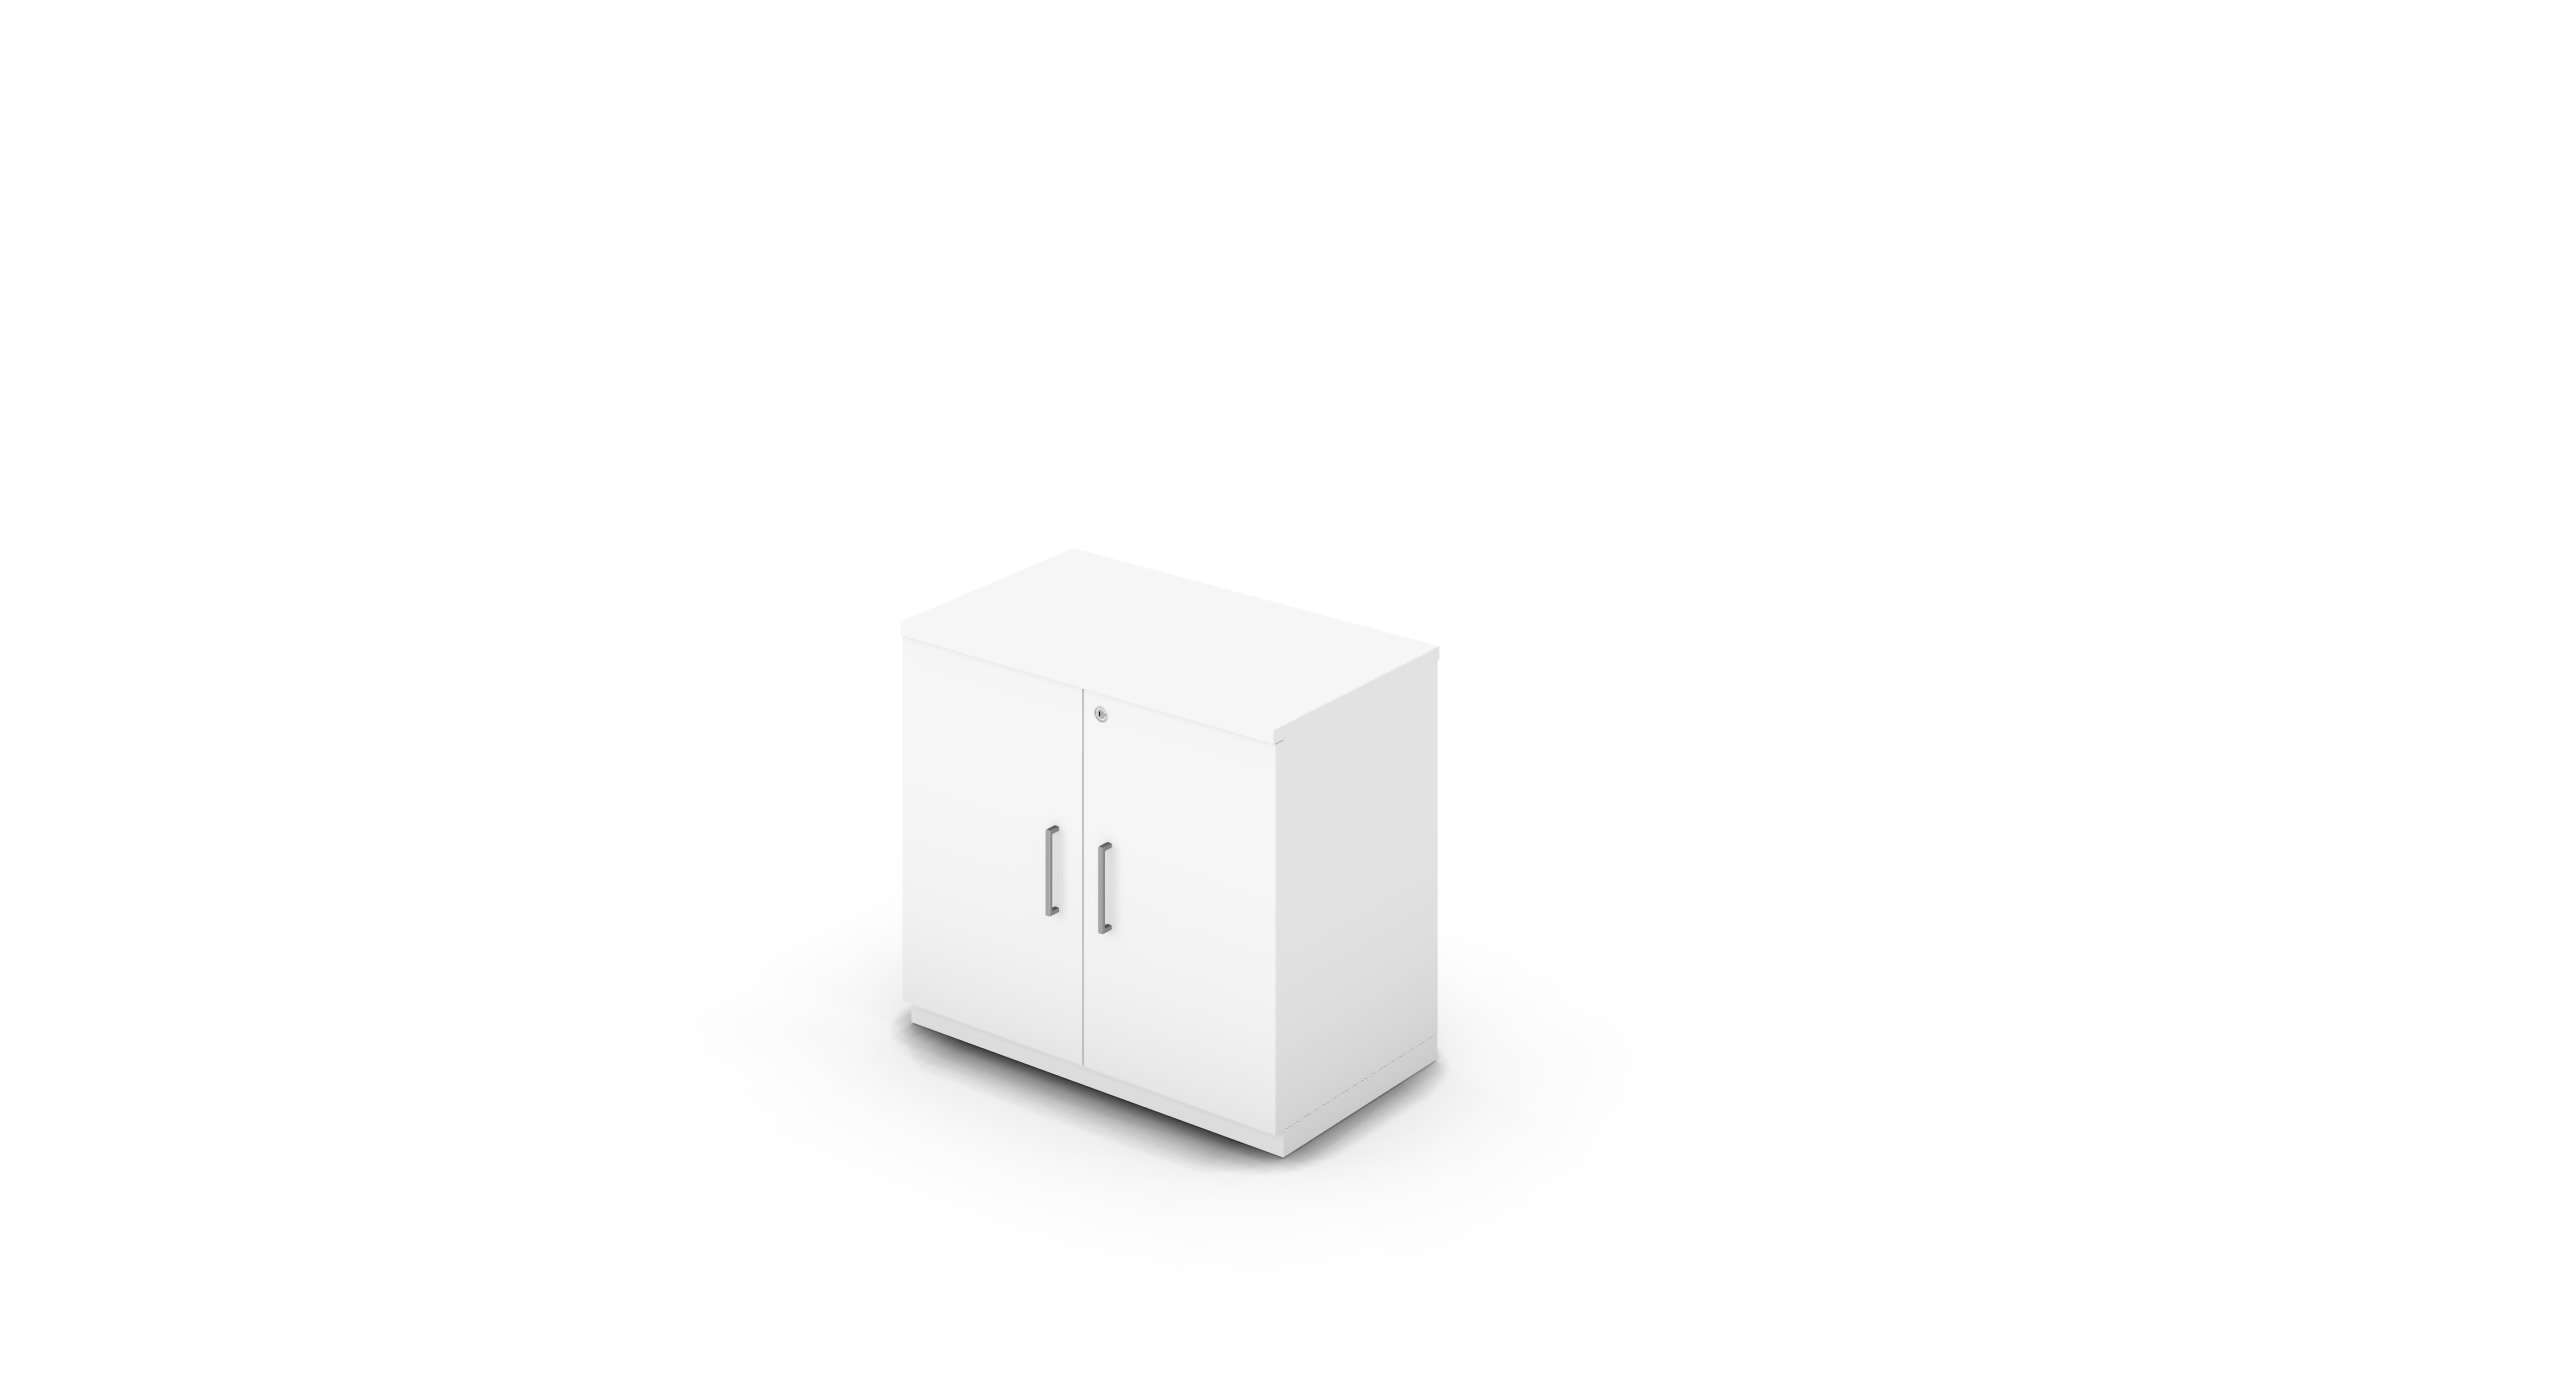 Cabinet_800x450x775_HD_White_Bar_Square_WithCylinder